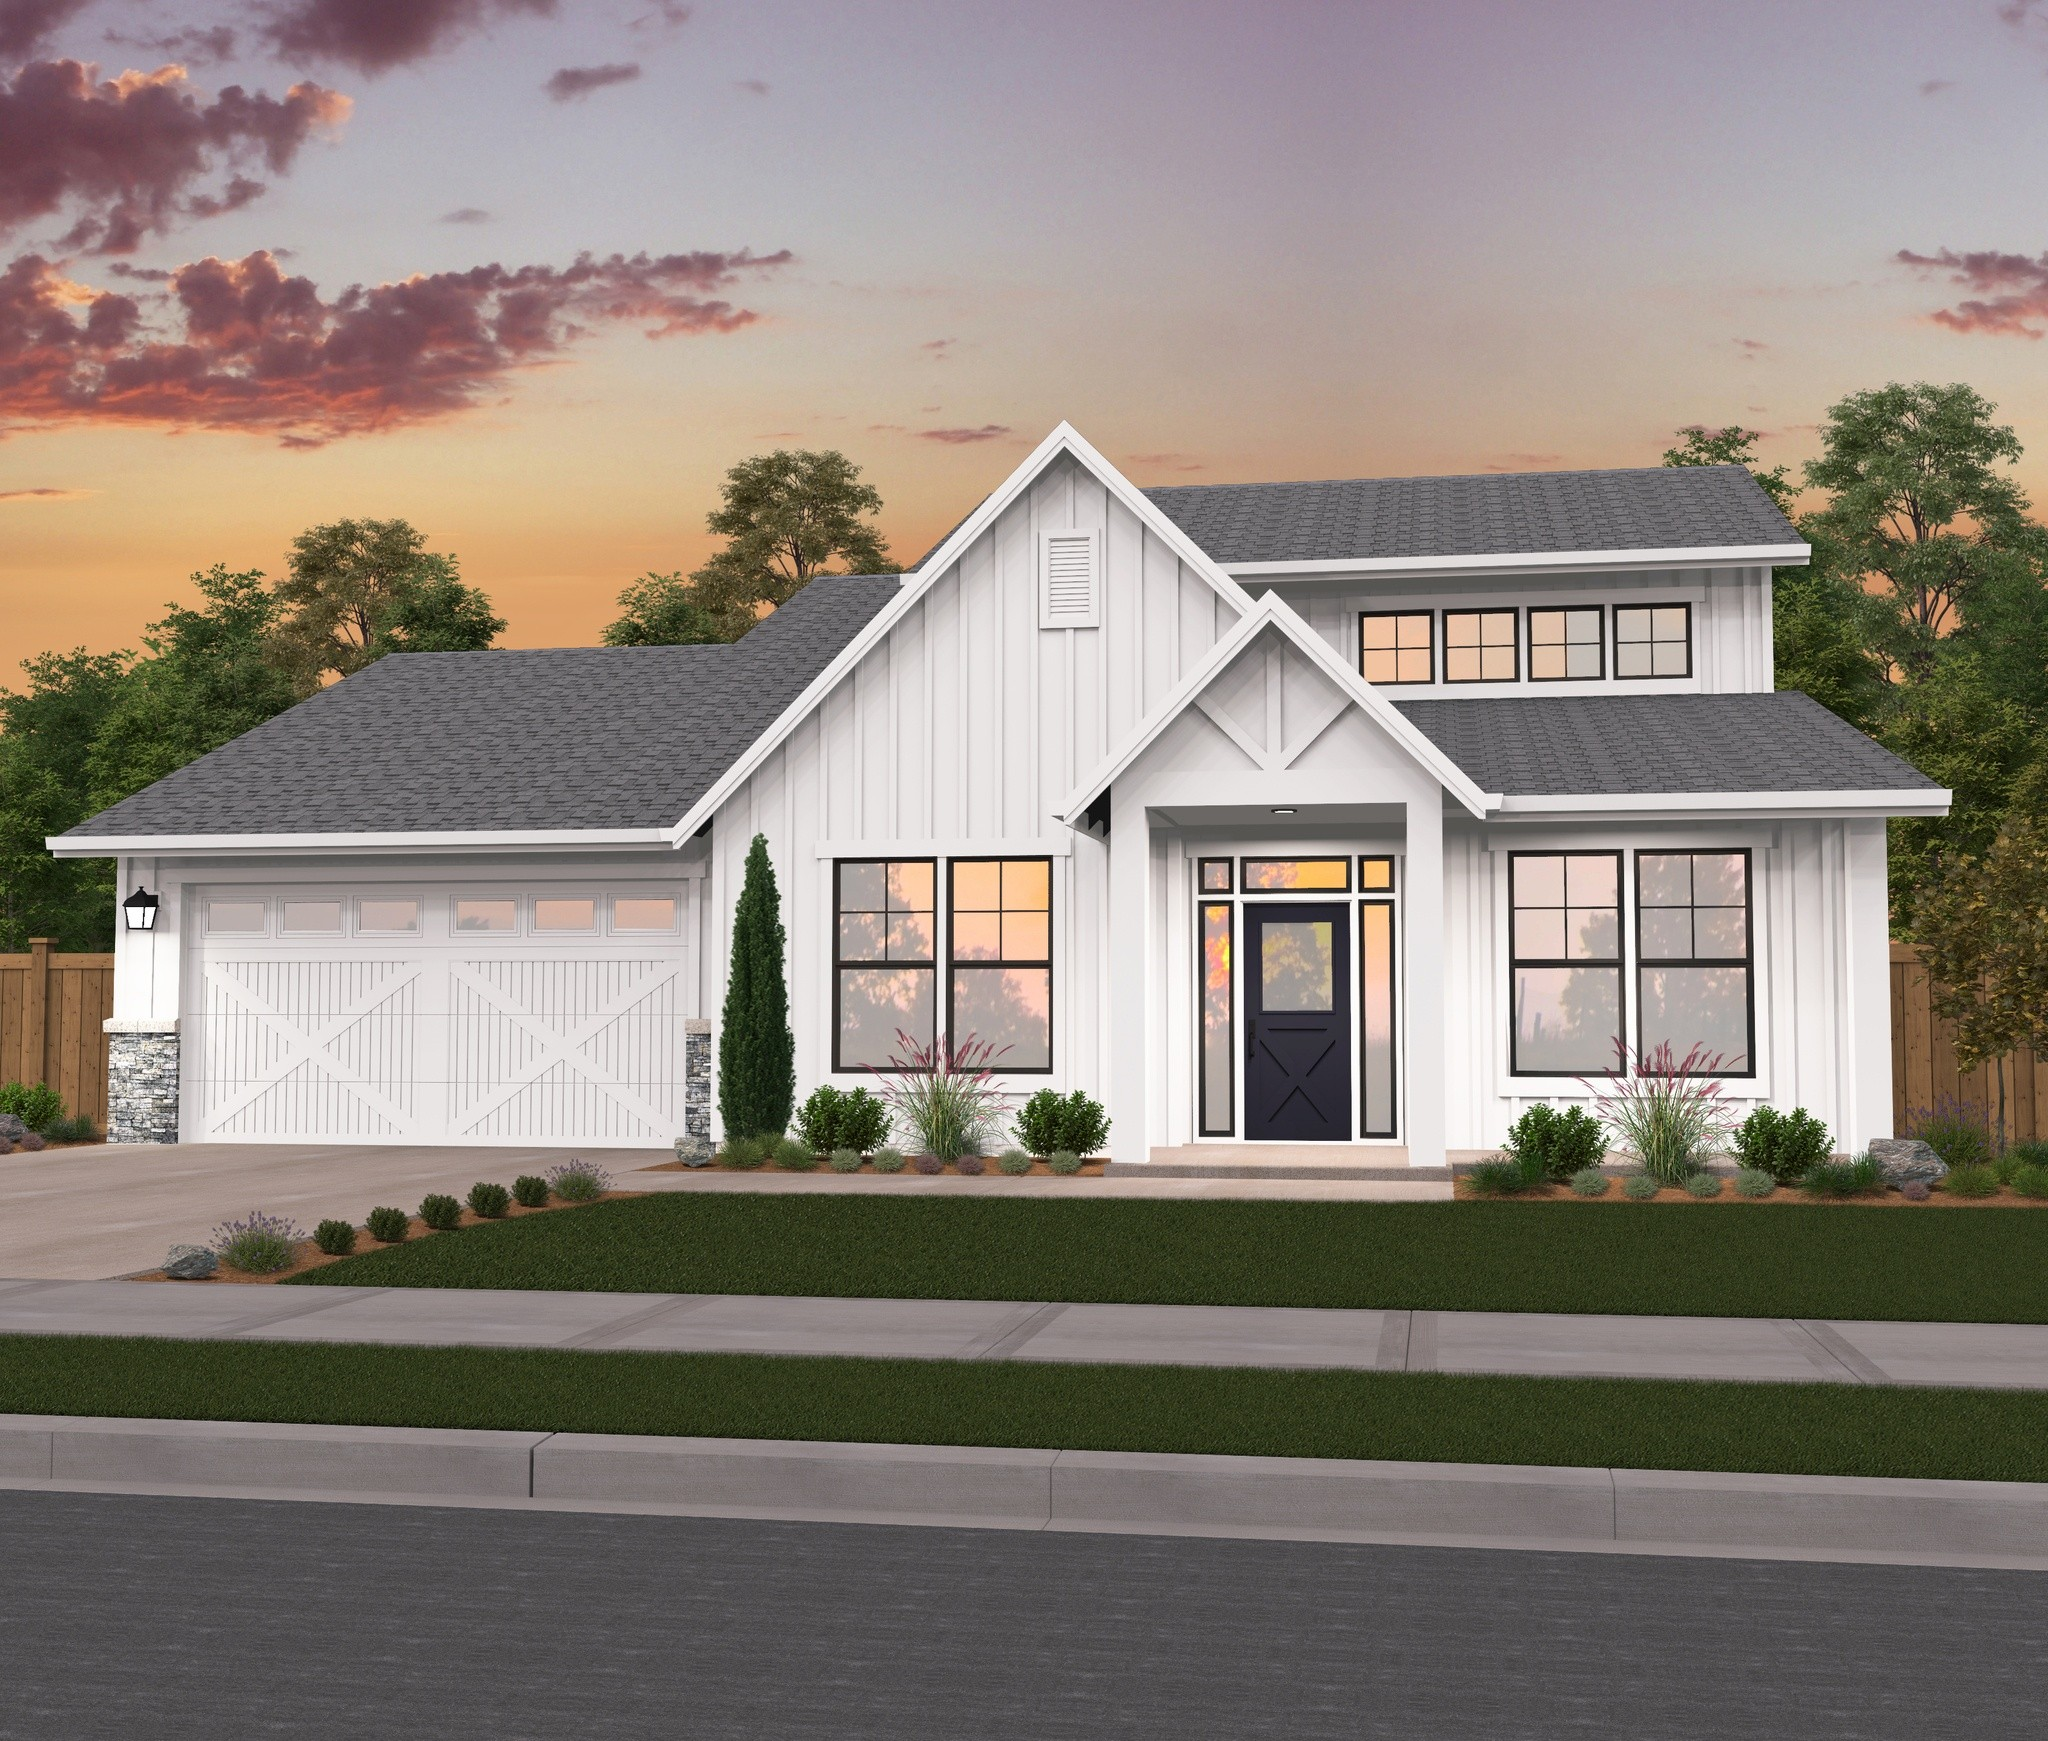 La-Grande 2 Modern Farmhouse Plan | Modern Farmhouse Designs